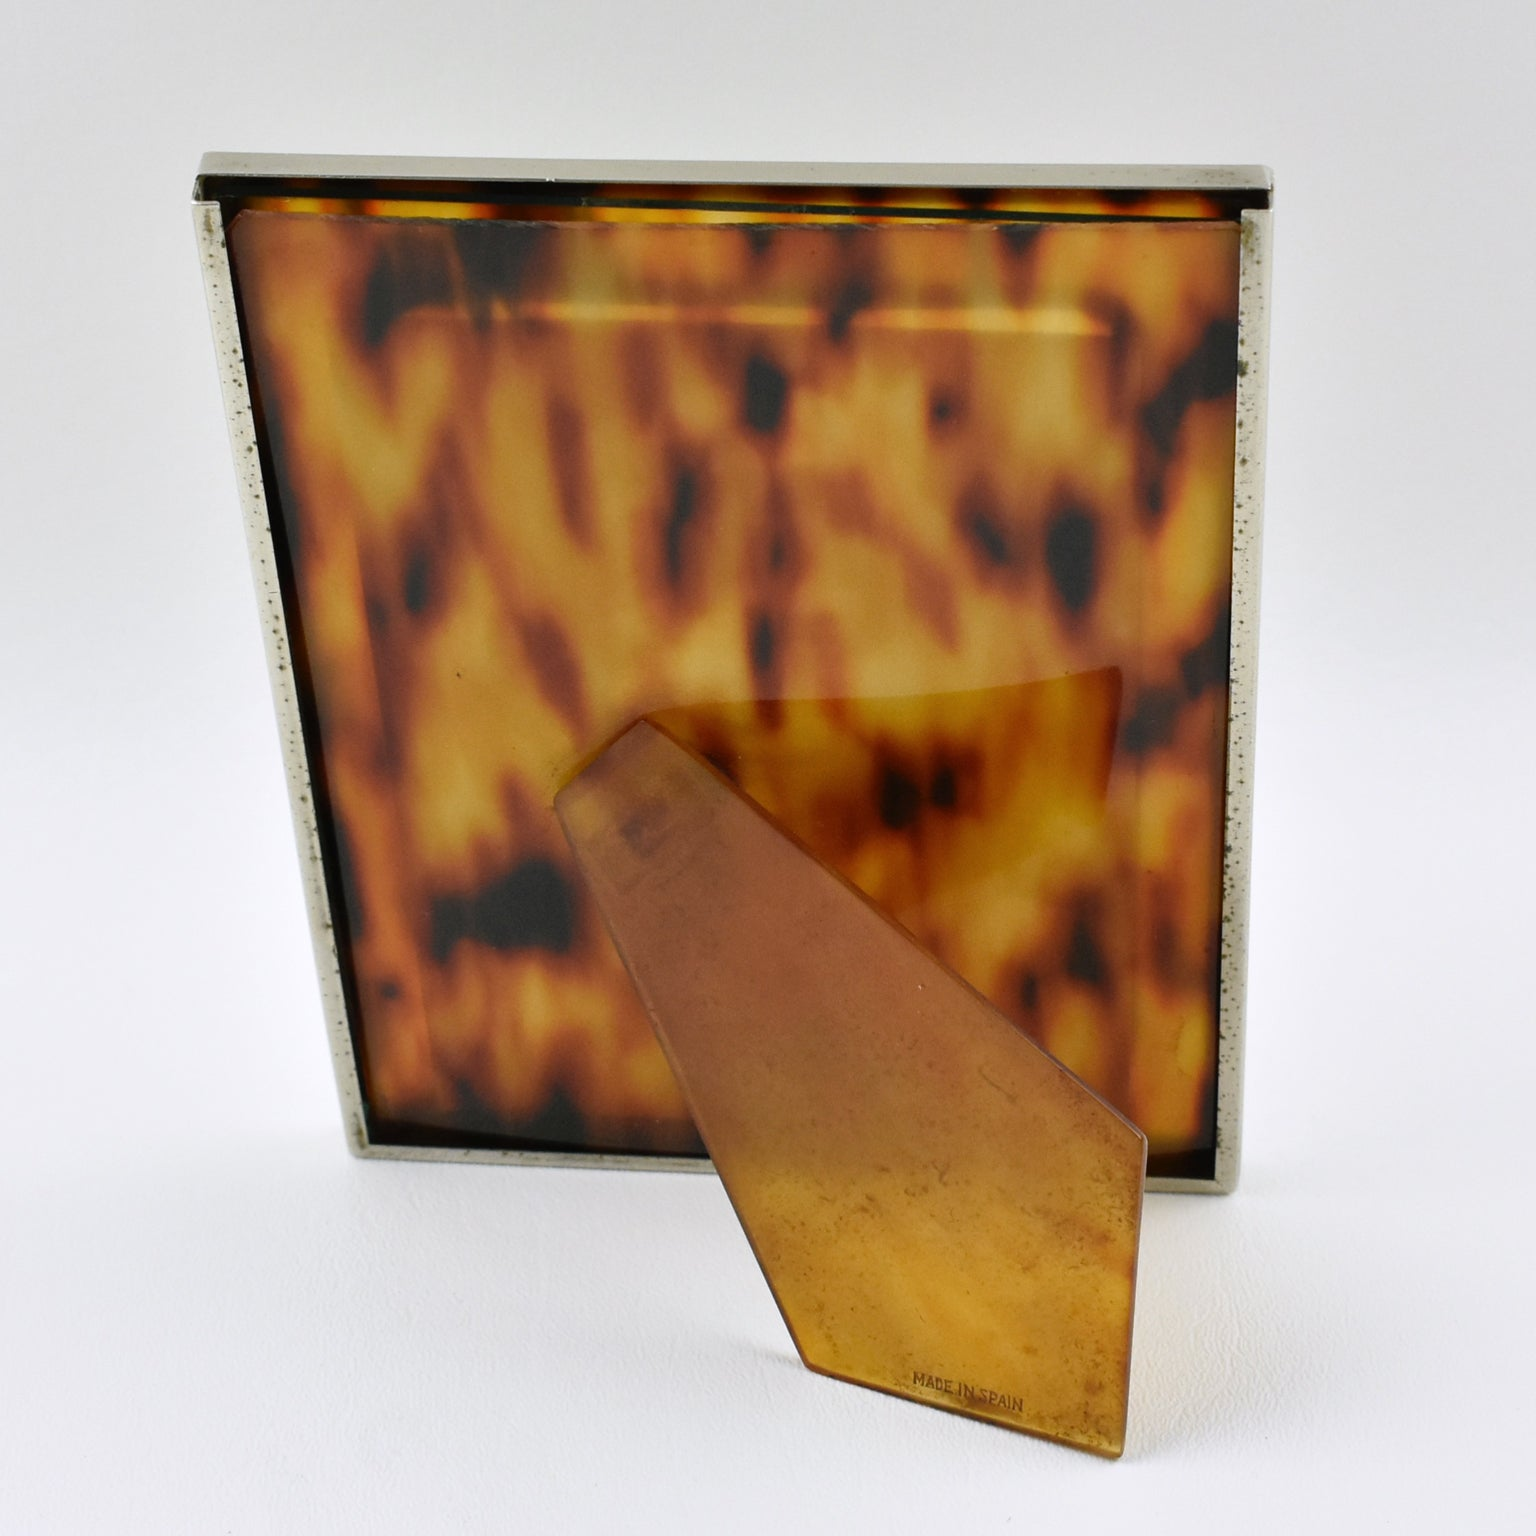 ca0c83c998e Tortoise like celluloid and chrome picture photo frame for sale at stdibs  jpg 1536x1536 Celluloid picture